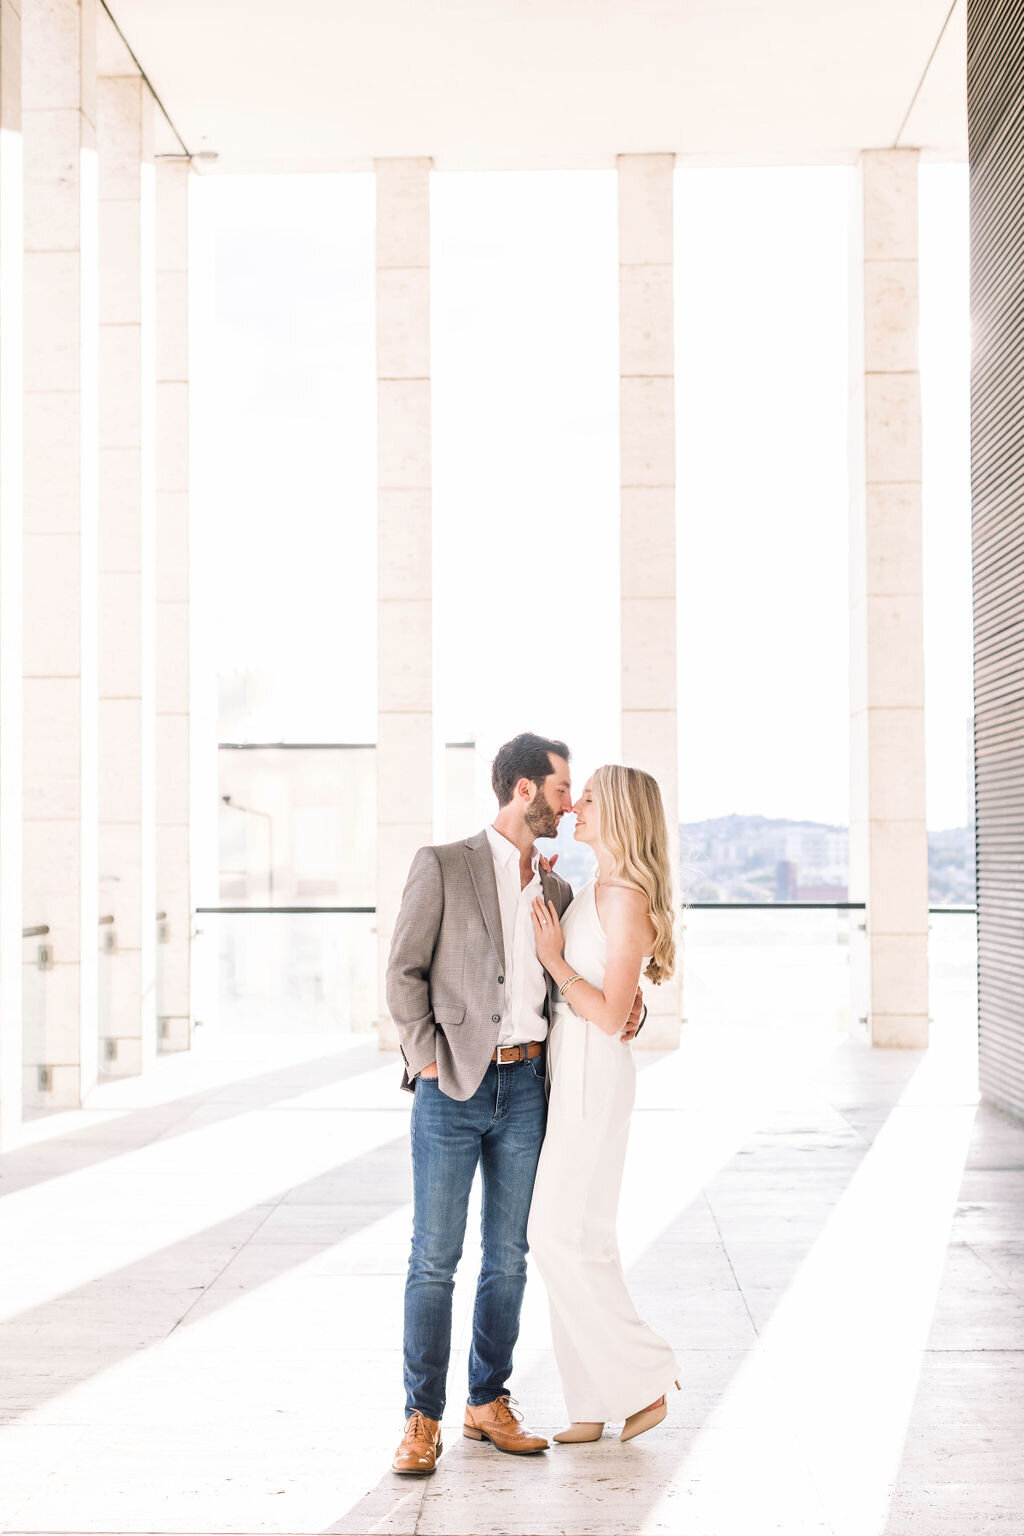 Fine Art Engagement Photography by Paige Michelle Photography